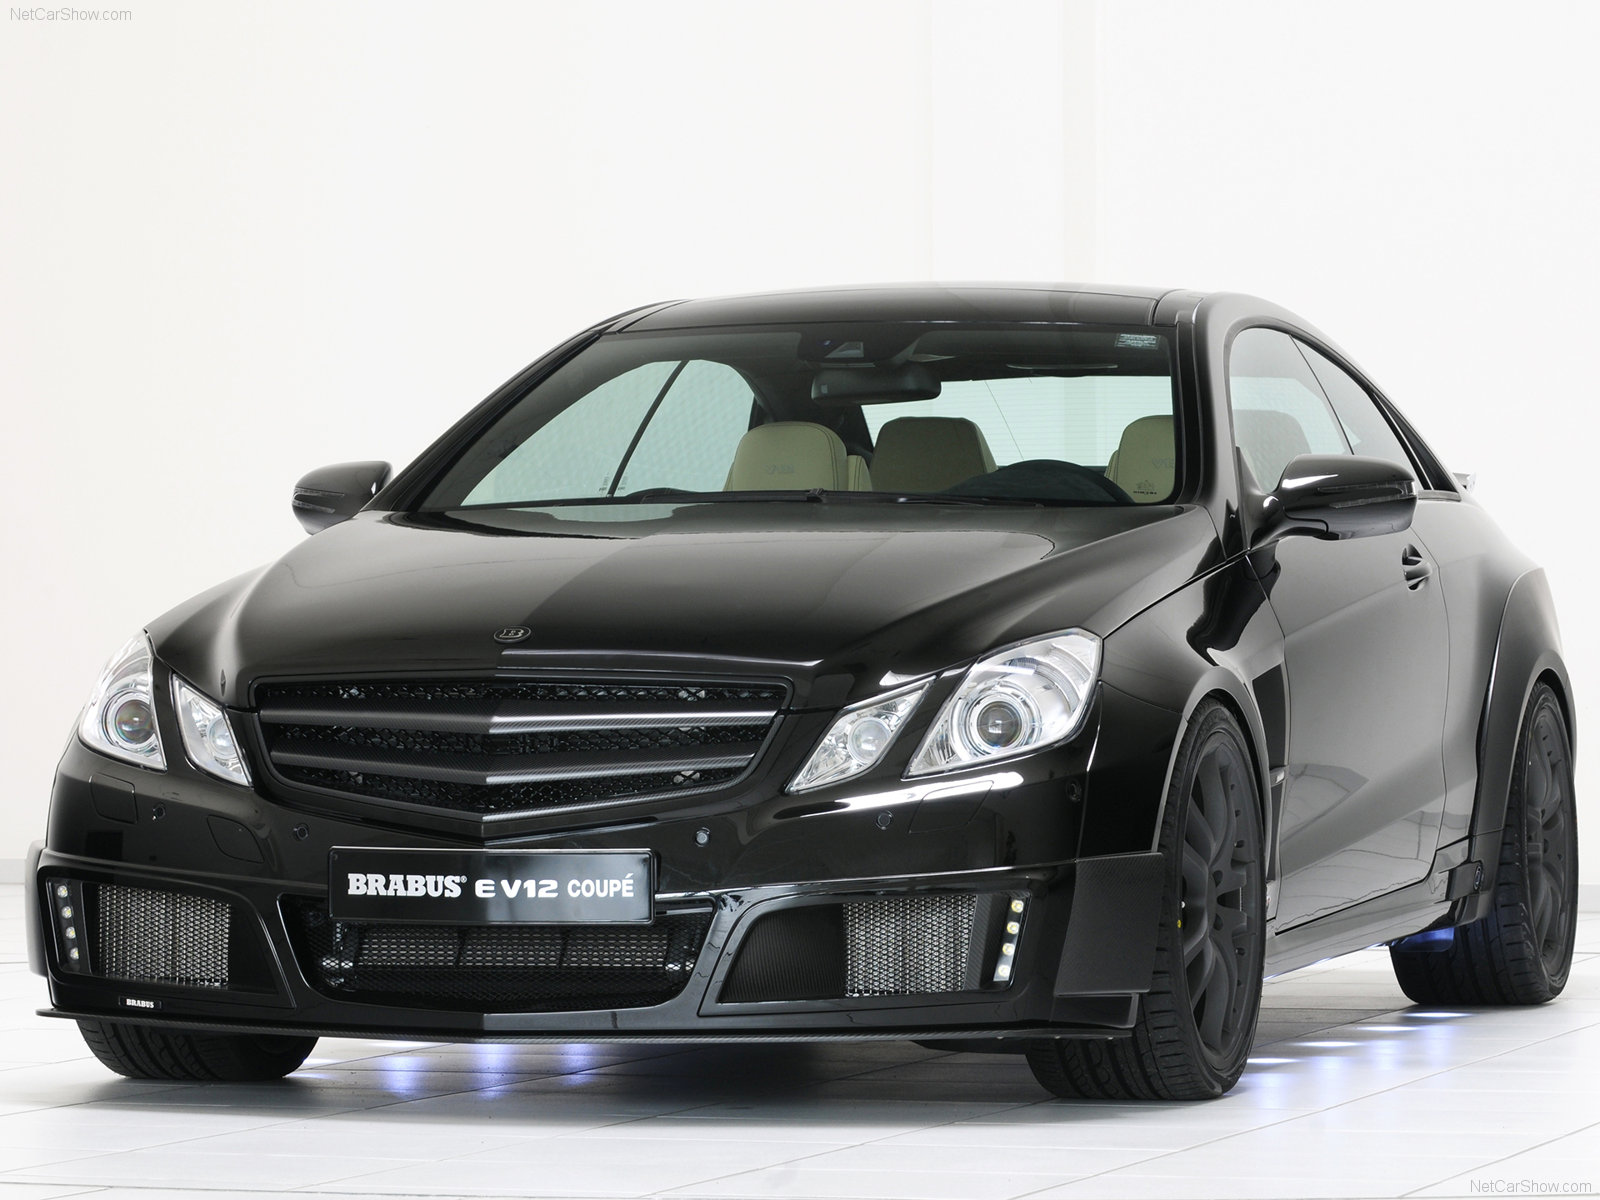 Brabus E V12 Coupe photo 72407